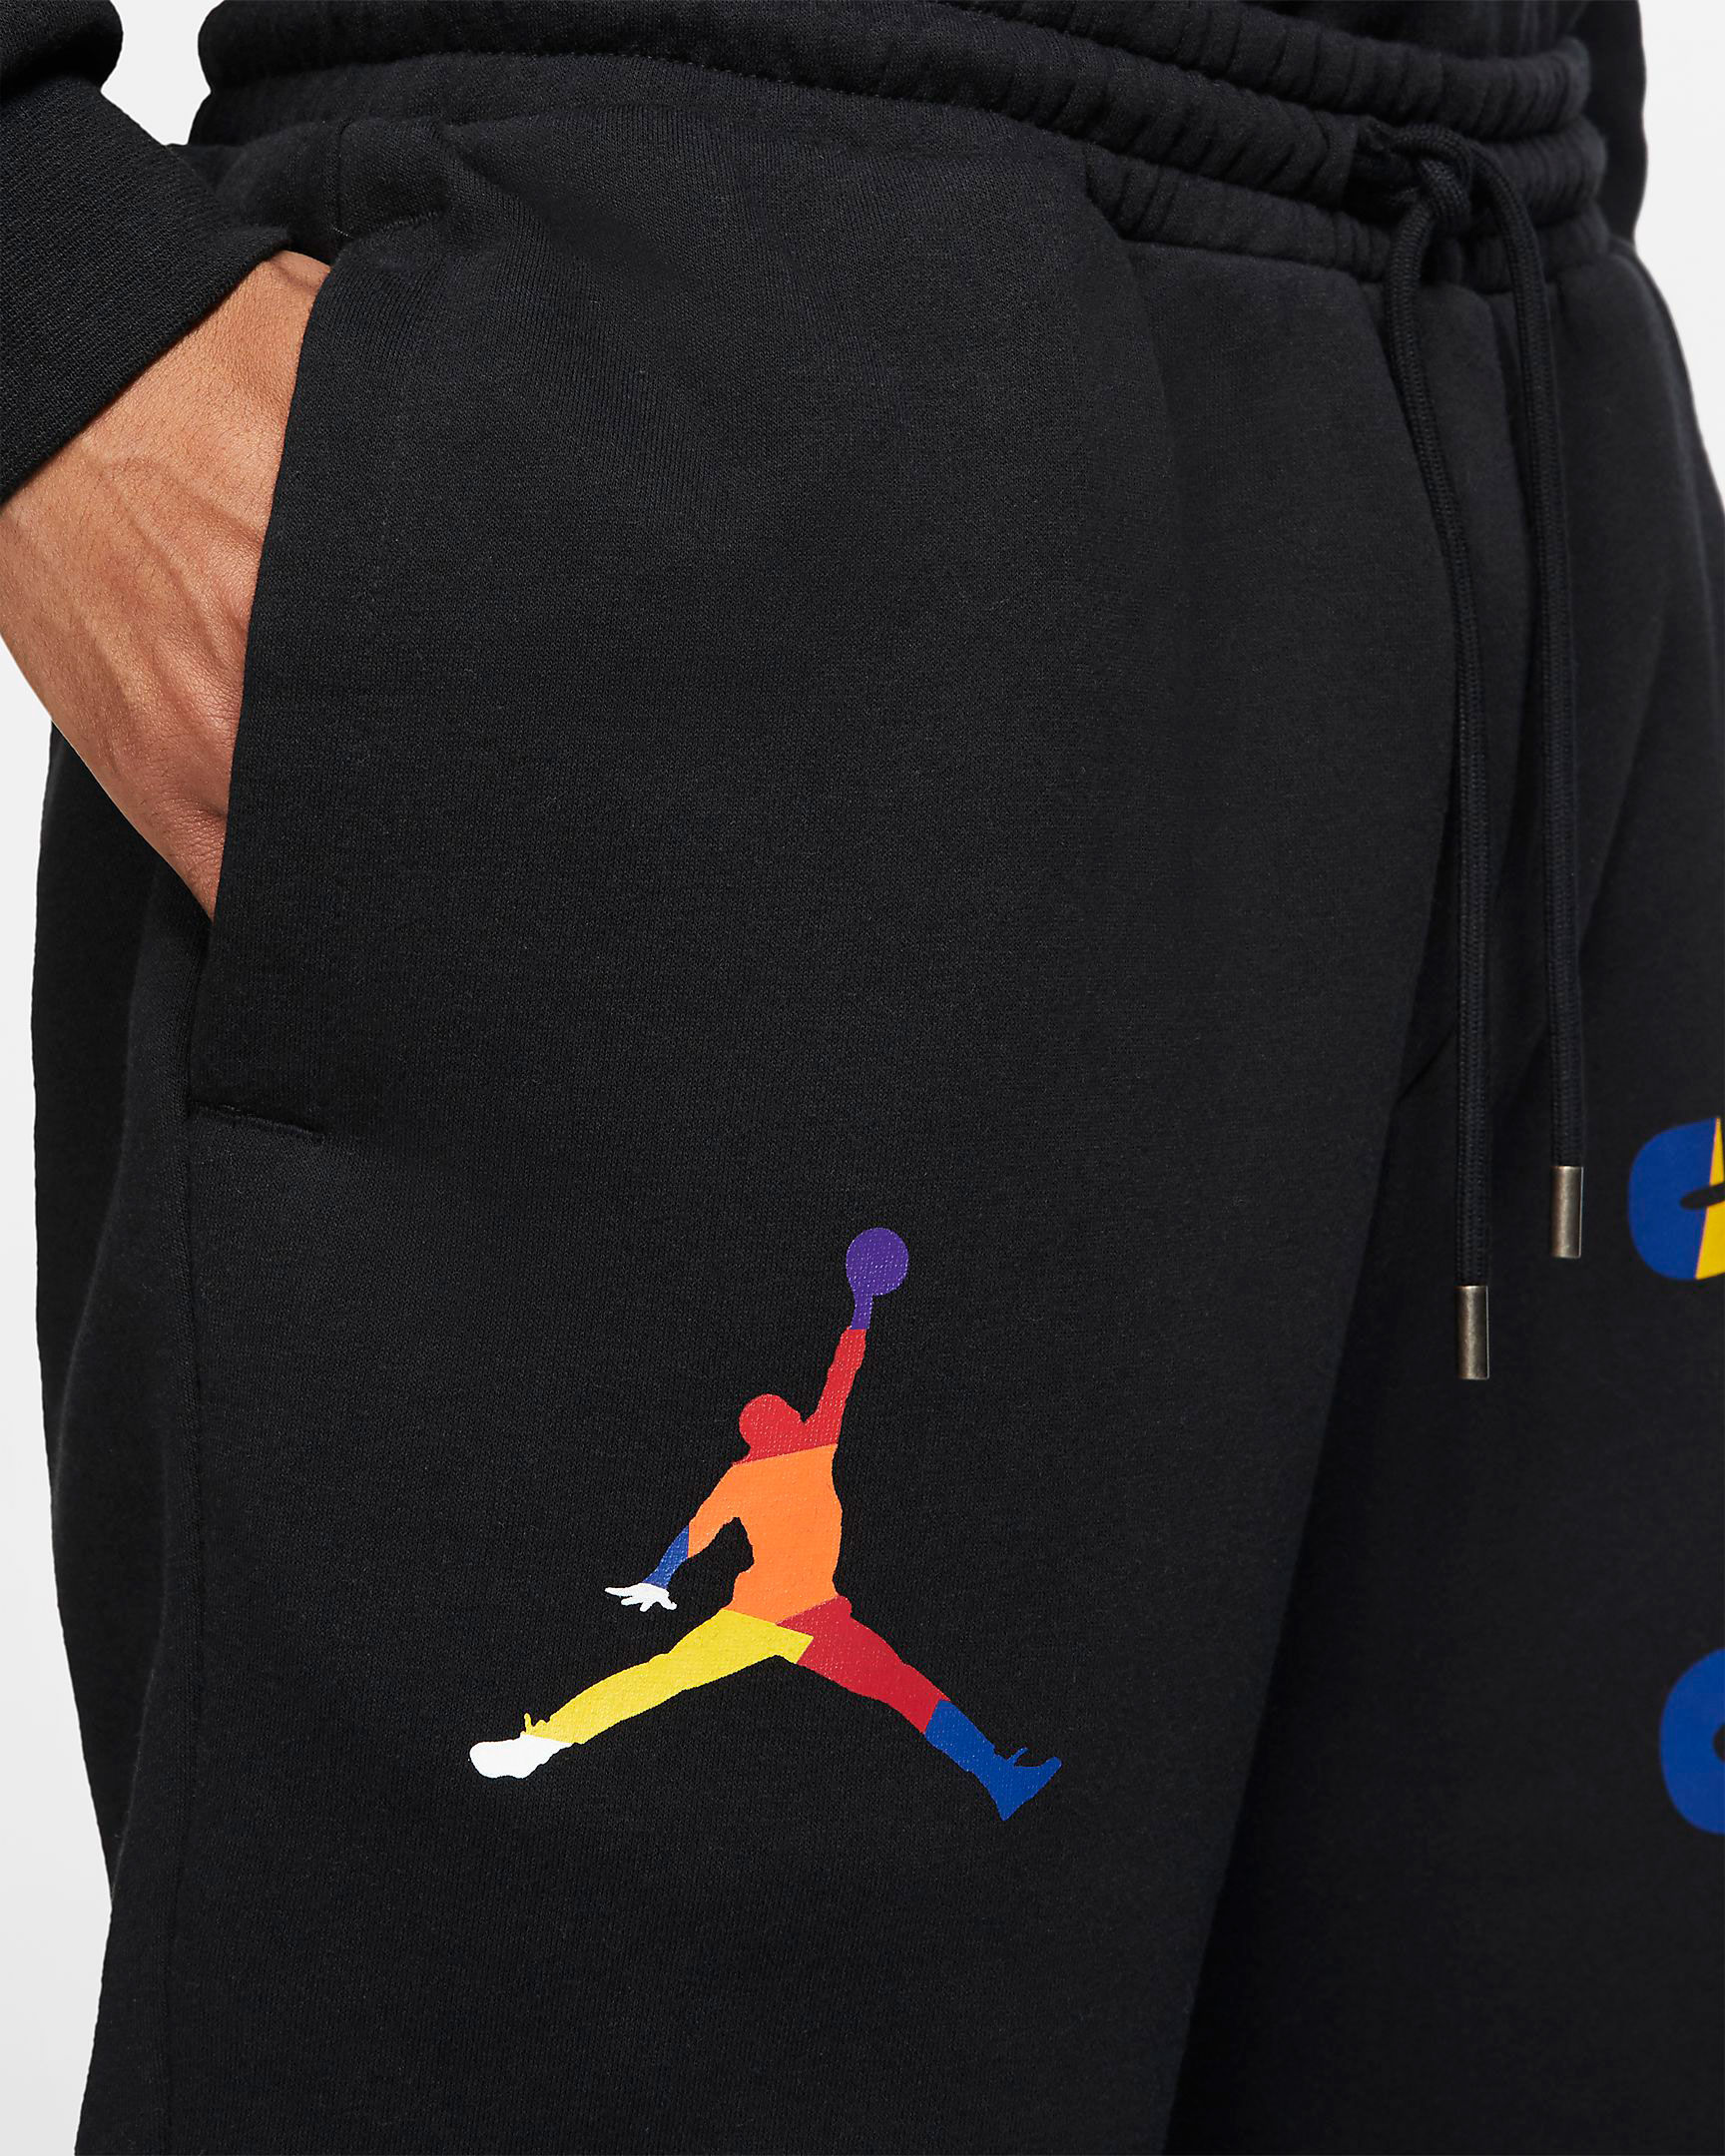 air-jordan-3-knicks-jogger-pant-match-black-2